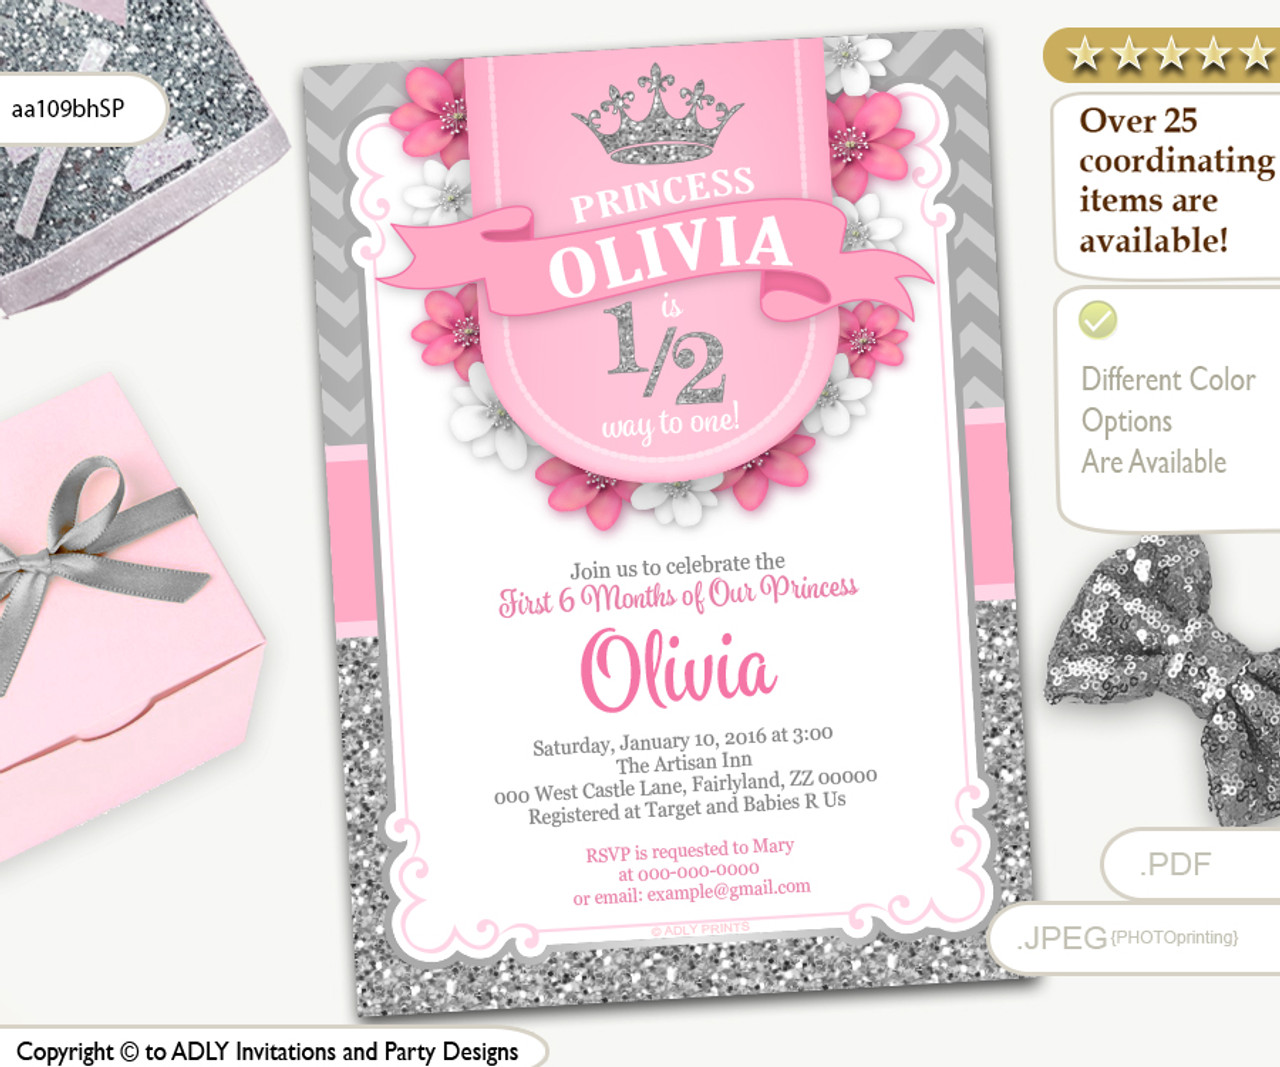 Half Way To One 1 2 Birthday Invitation For Little Princess In Pink